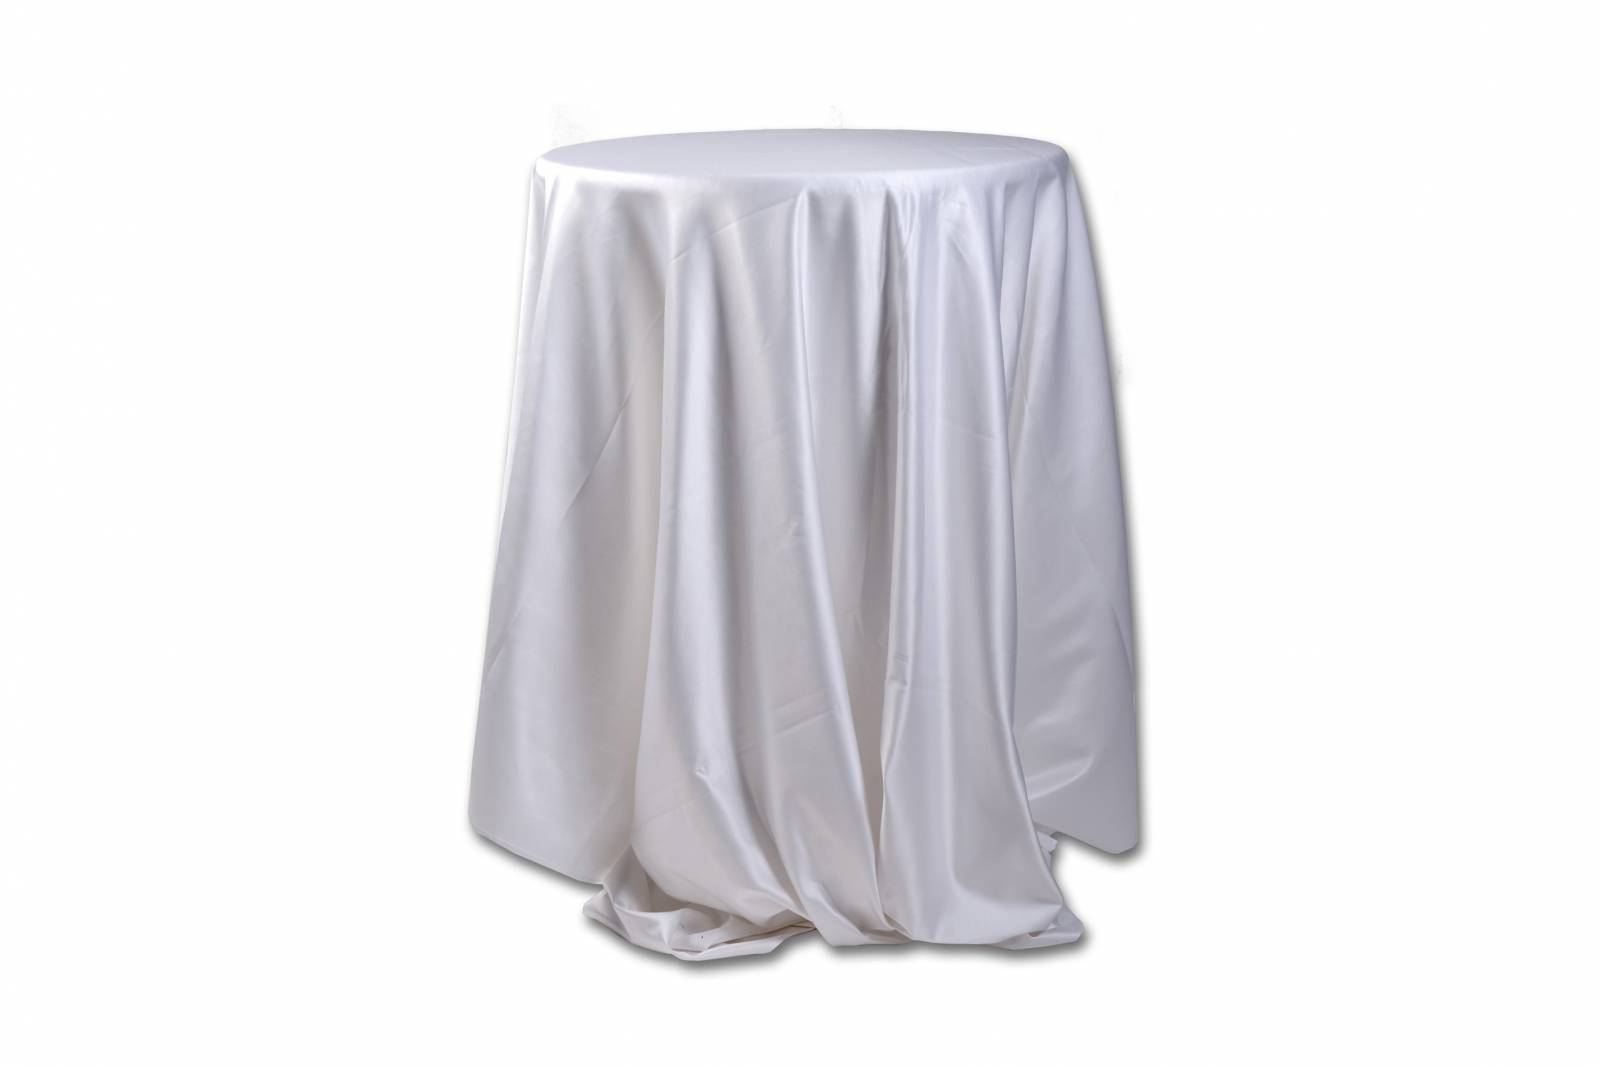 Astonishing Table Linens Rental Other Catering Inventory Rental Download Free Architecture Designs Embacsunscenecom